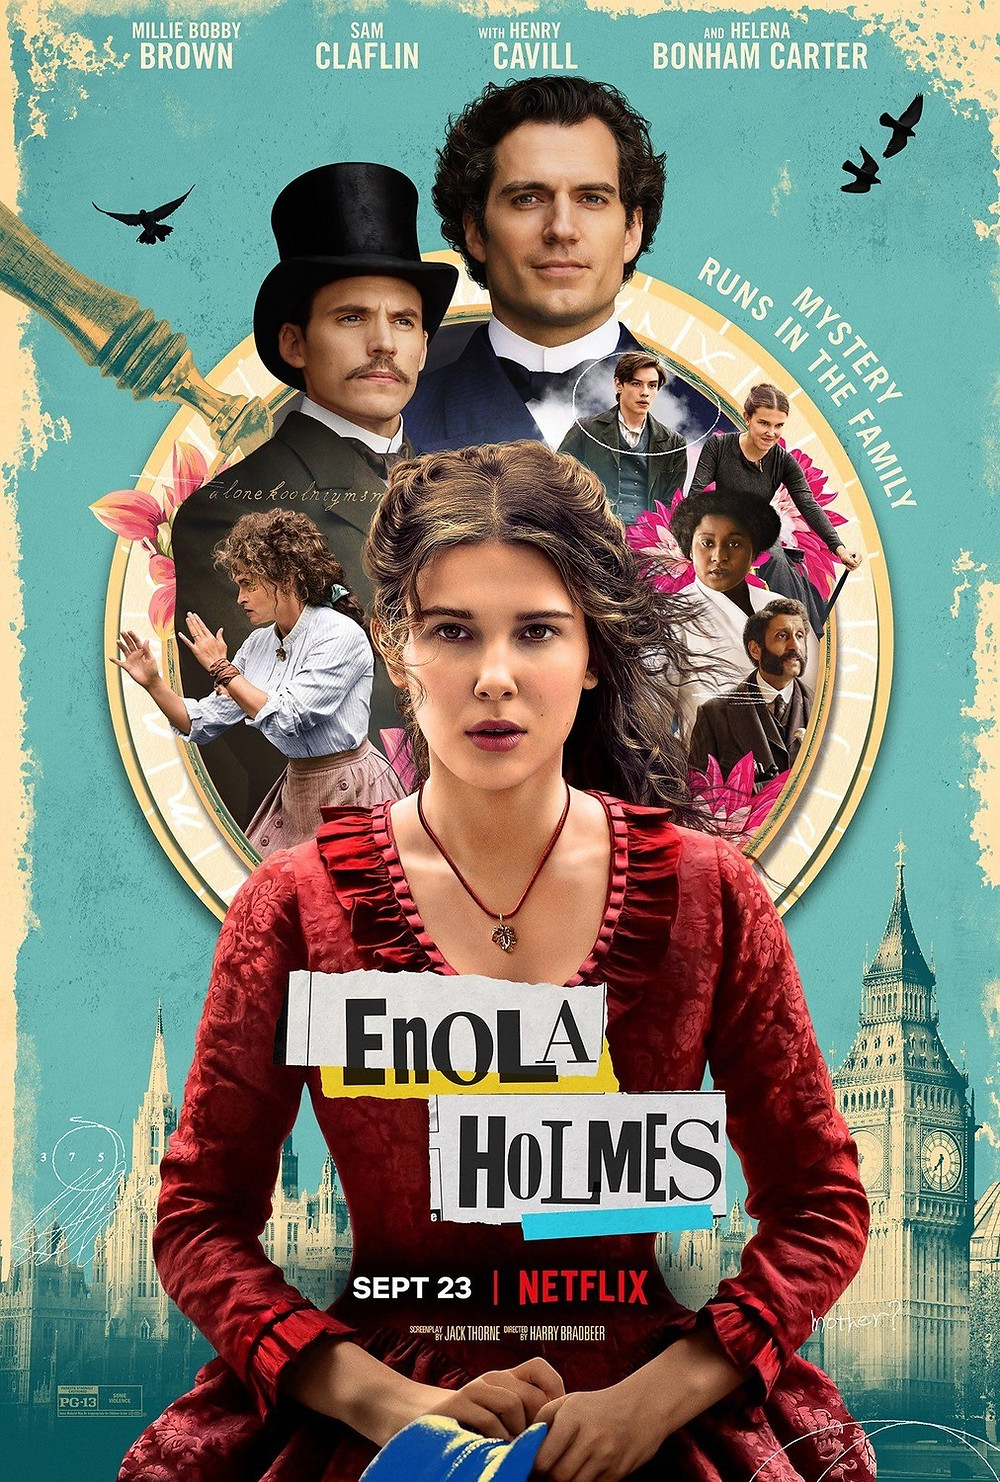 The poster for Enola Holmes shows eight of our main characters, with Enola primary among them, gazing forward against an eggshell-blue background with the golden design of a magnifying-glass silhouetted in the background.